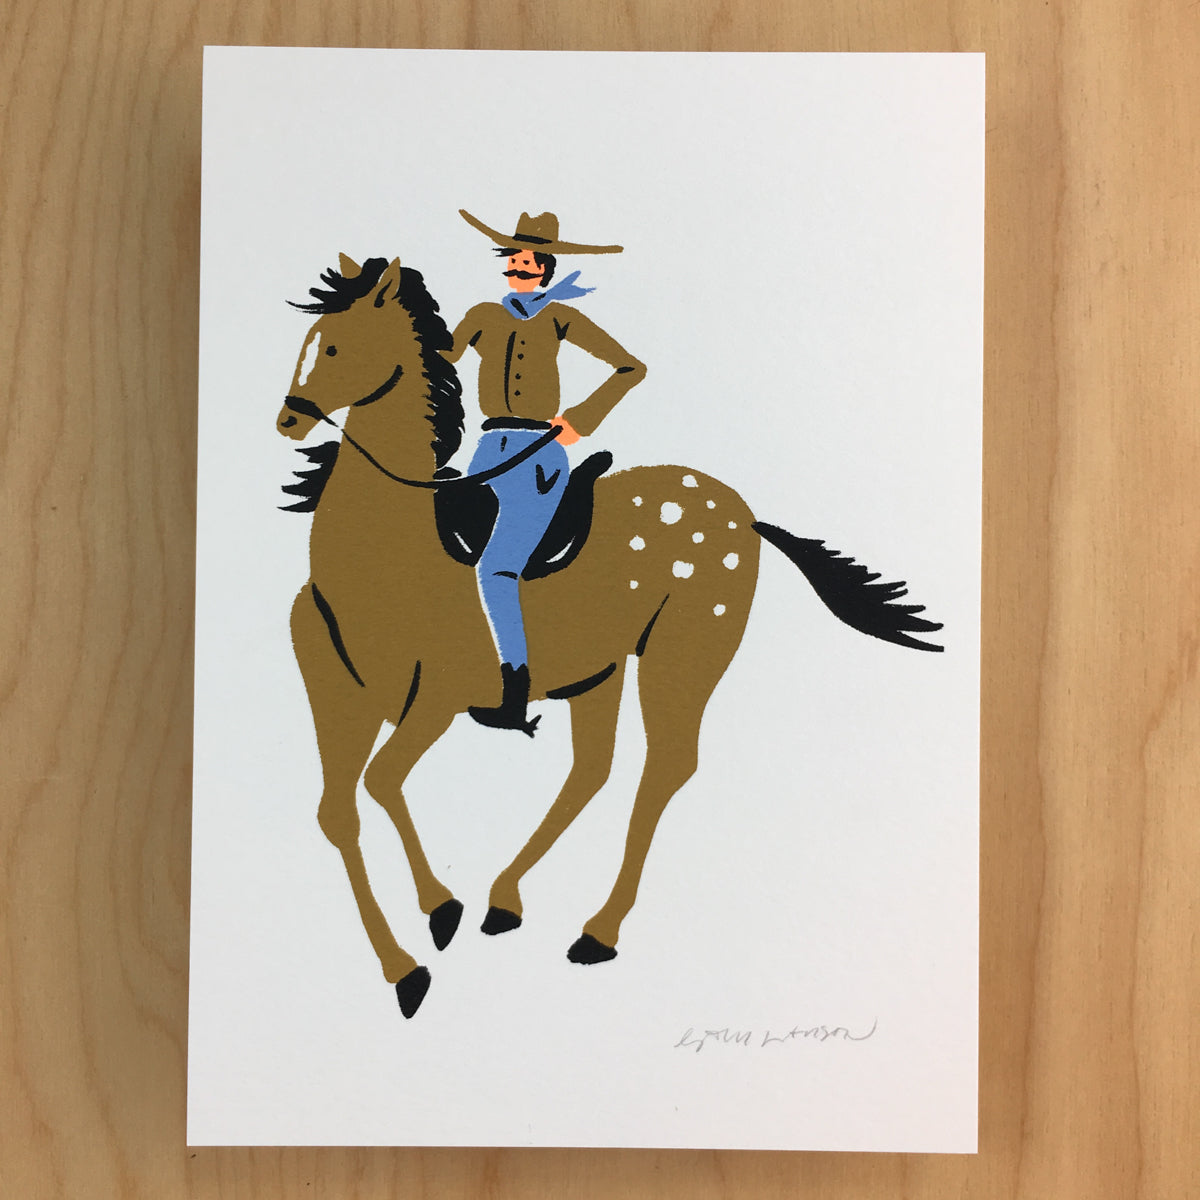 Howdy The Cowboy - Signed Print #170